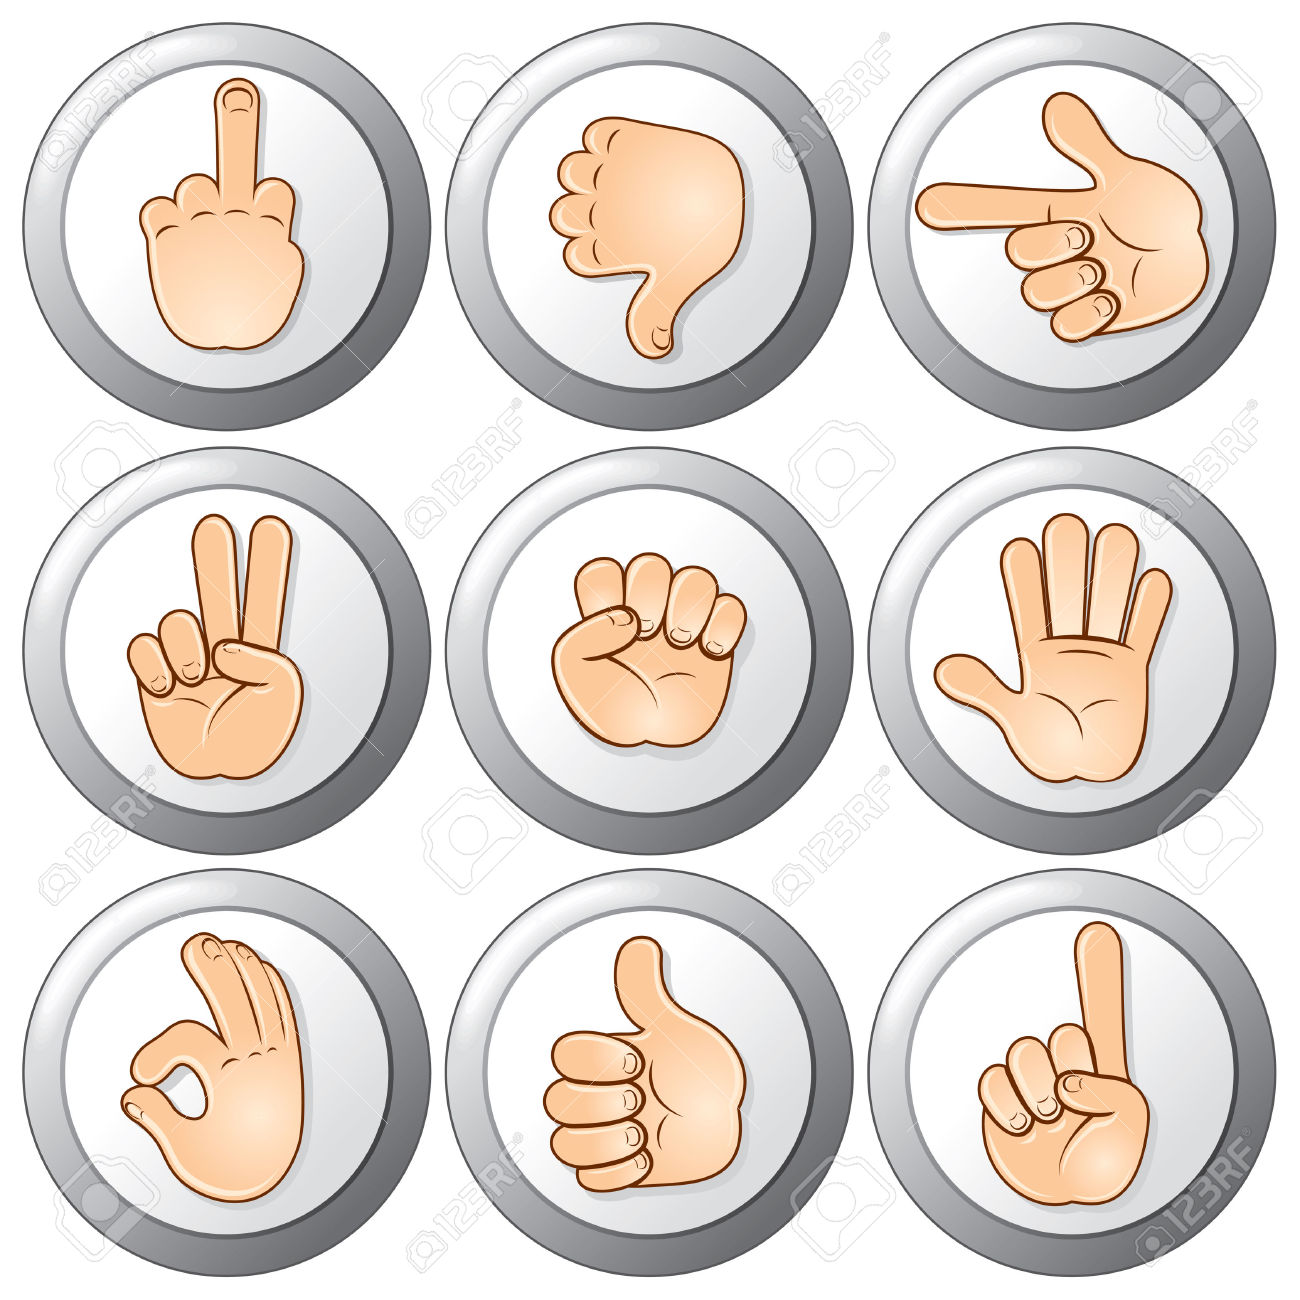 Free hand gesture clipart.